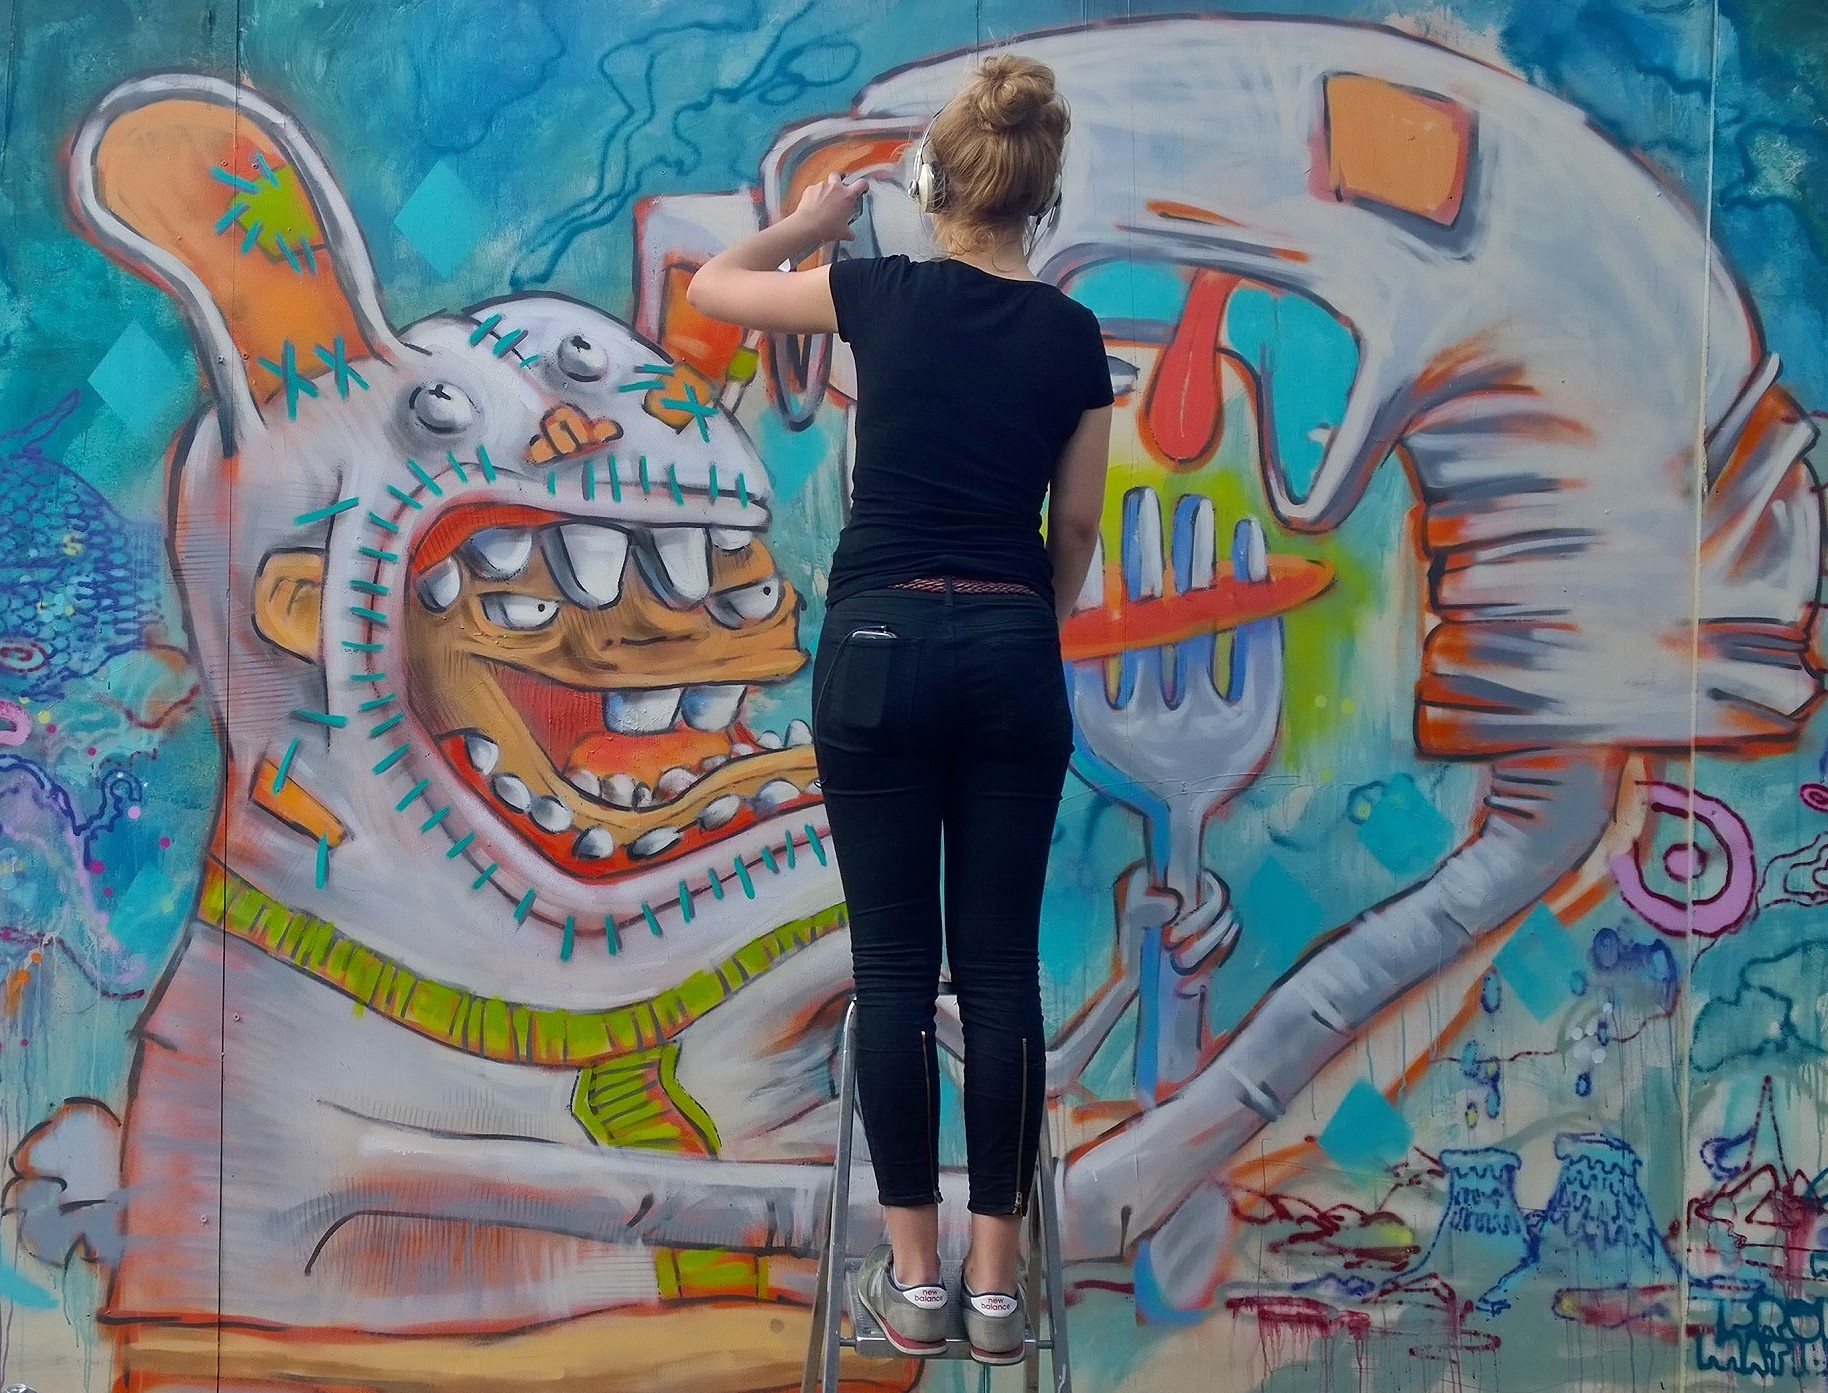 The Top 10 Best Places To See Street Art In London